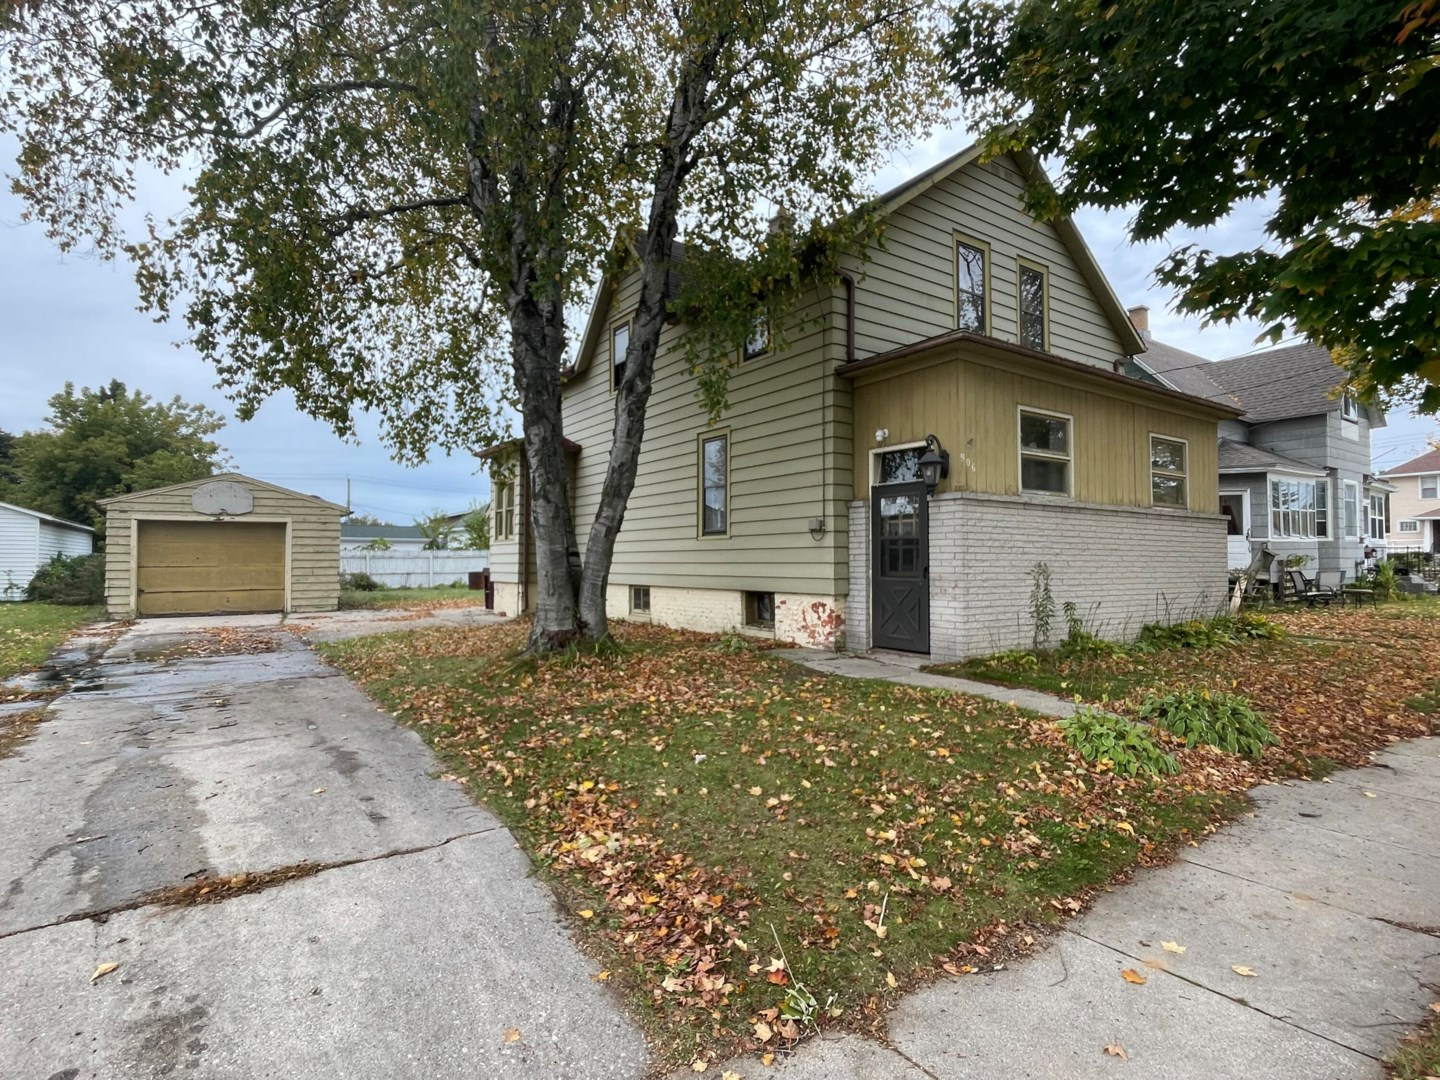 3-Bedroom House In Downtown Two Rivers